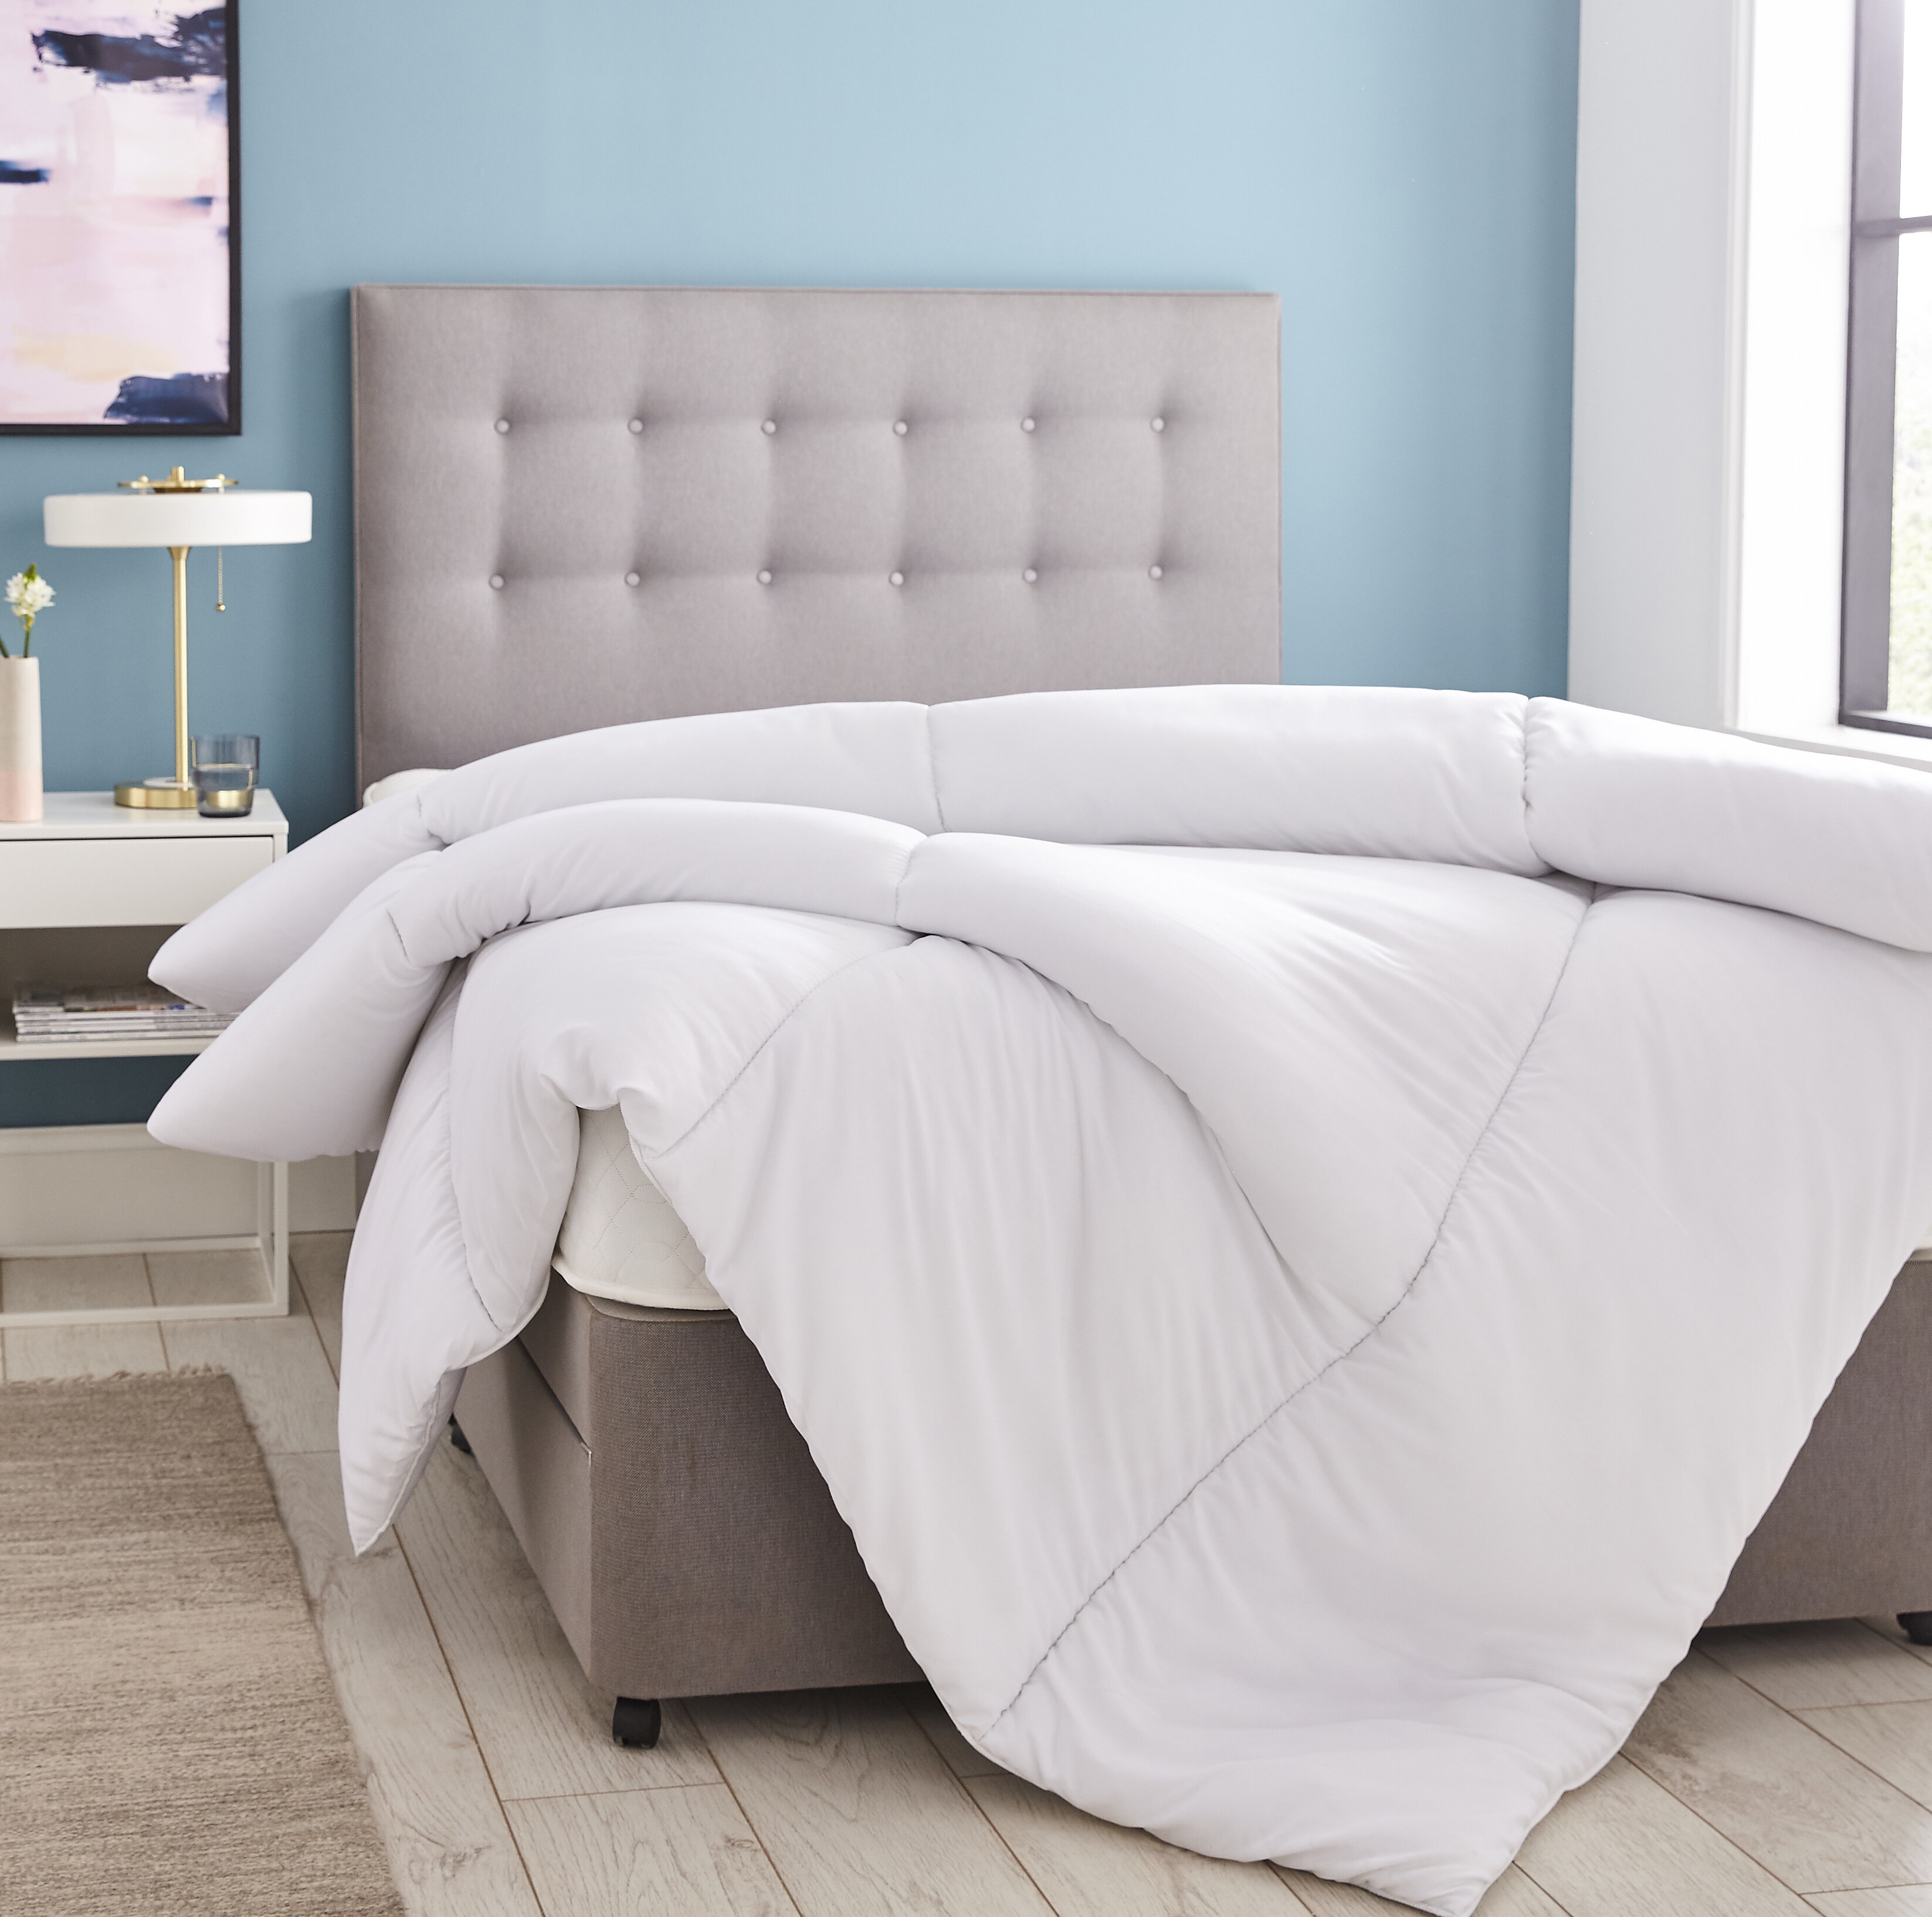 DOUBLE /& KING HIGH QUALITY HOLLOWFIBRE DUVET ONLY OR WITH 2 PILLOWS SINGLE